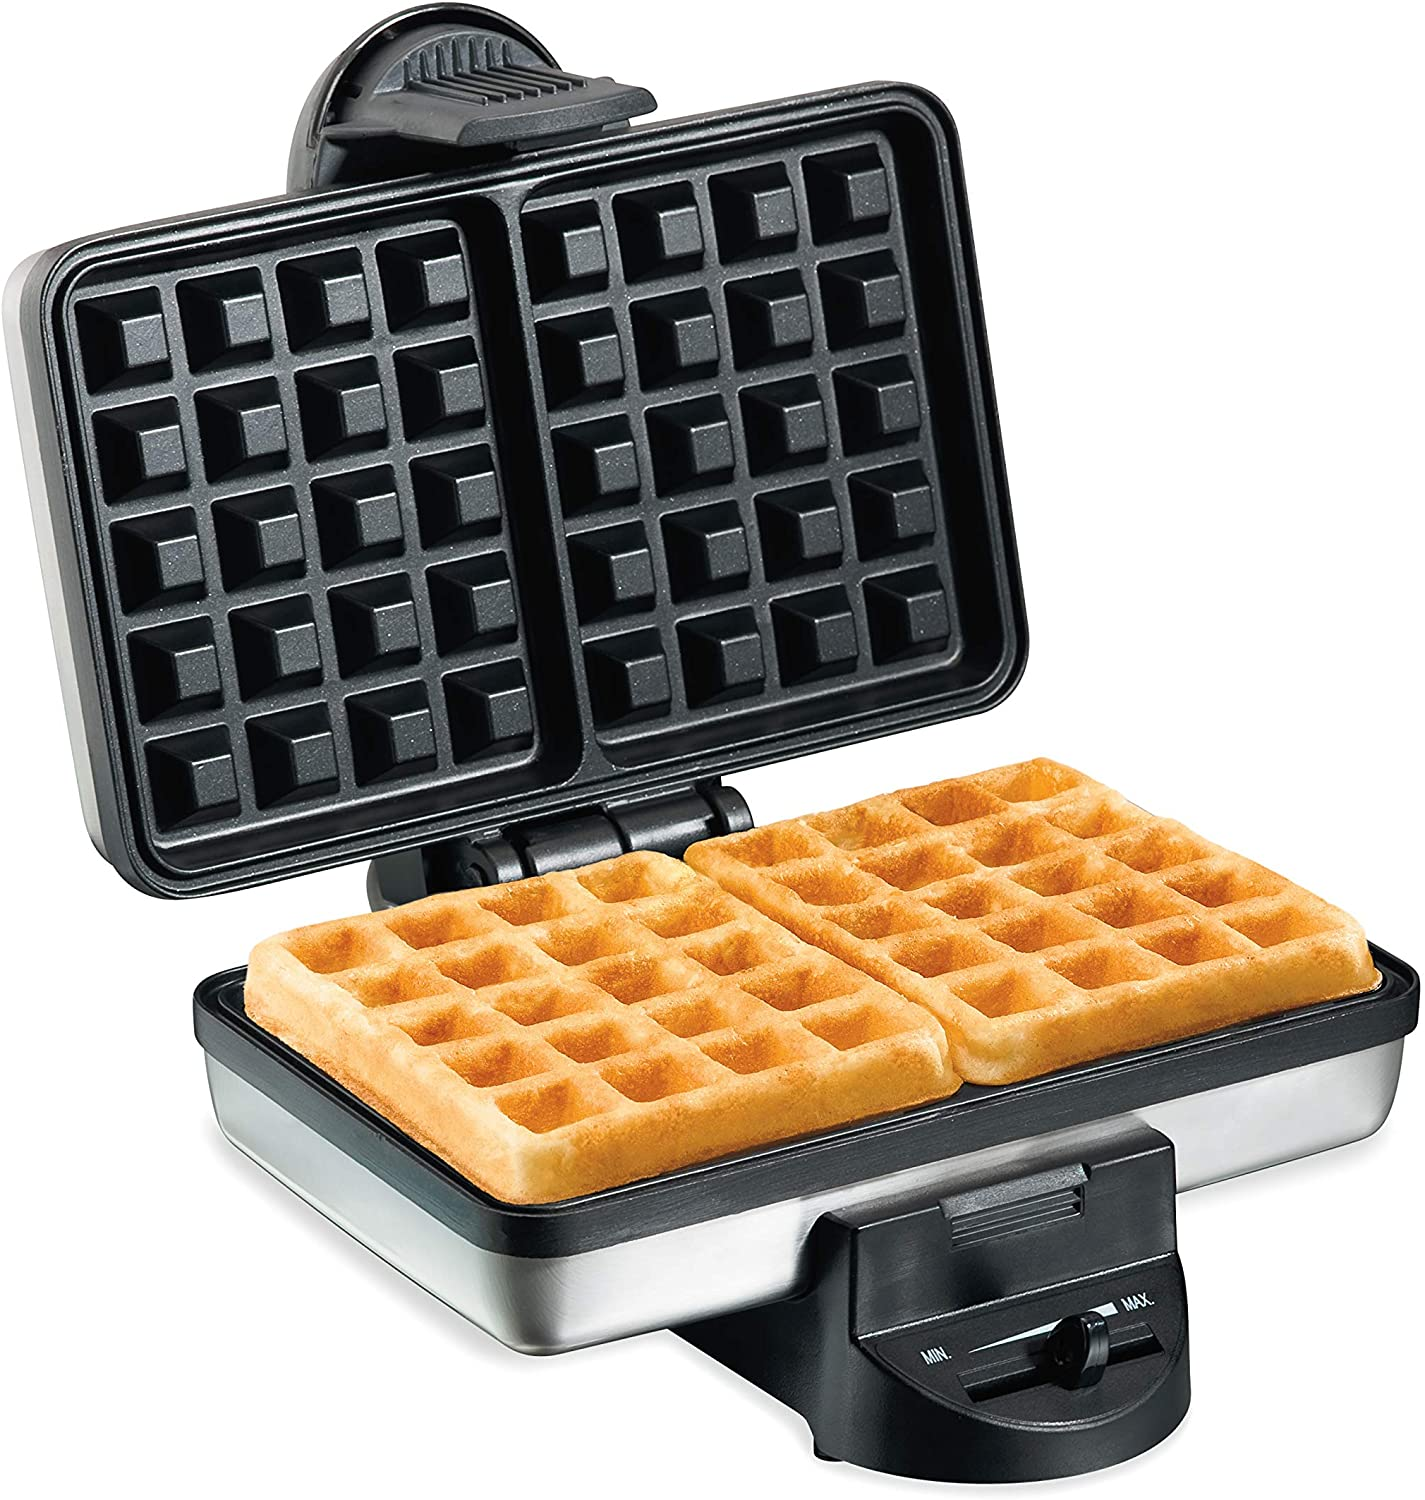 Hamilton Beach 2-Slice Non-Stick Belgian Waffle Maker with Browning Control, Indicator Lights, Compact Design, Premium Stainless Steel 26009